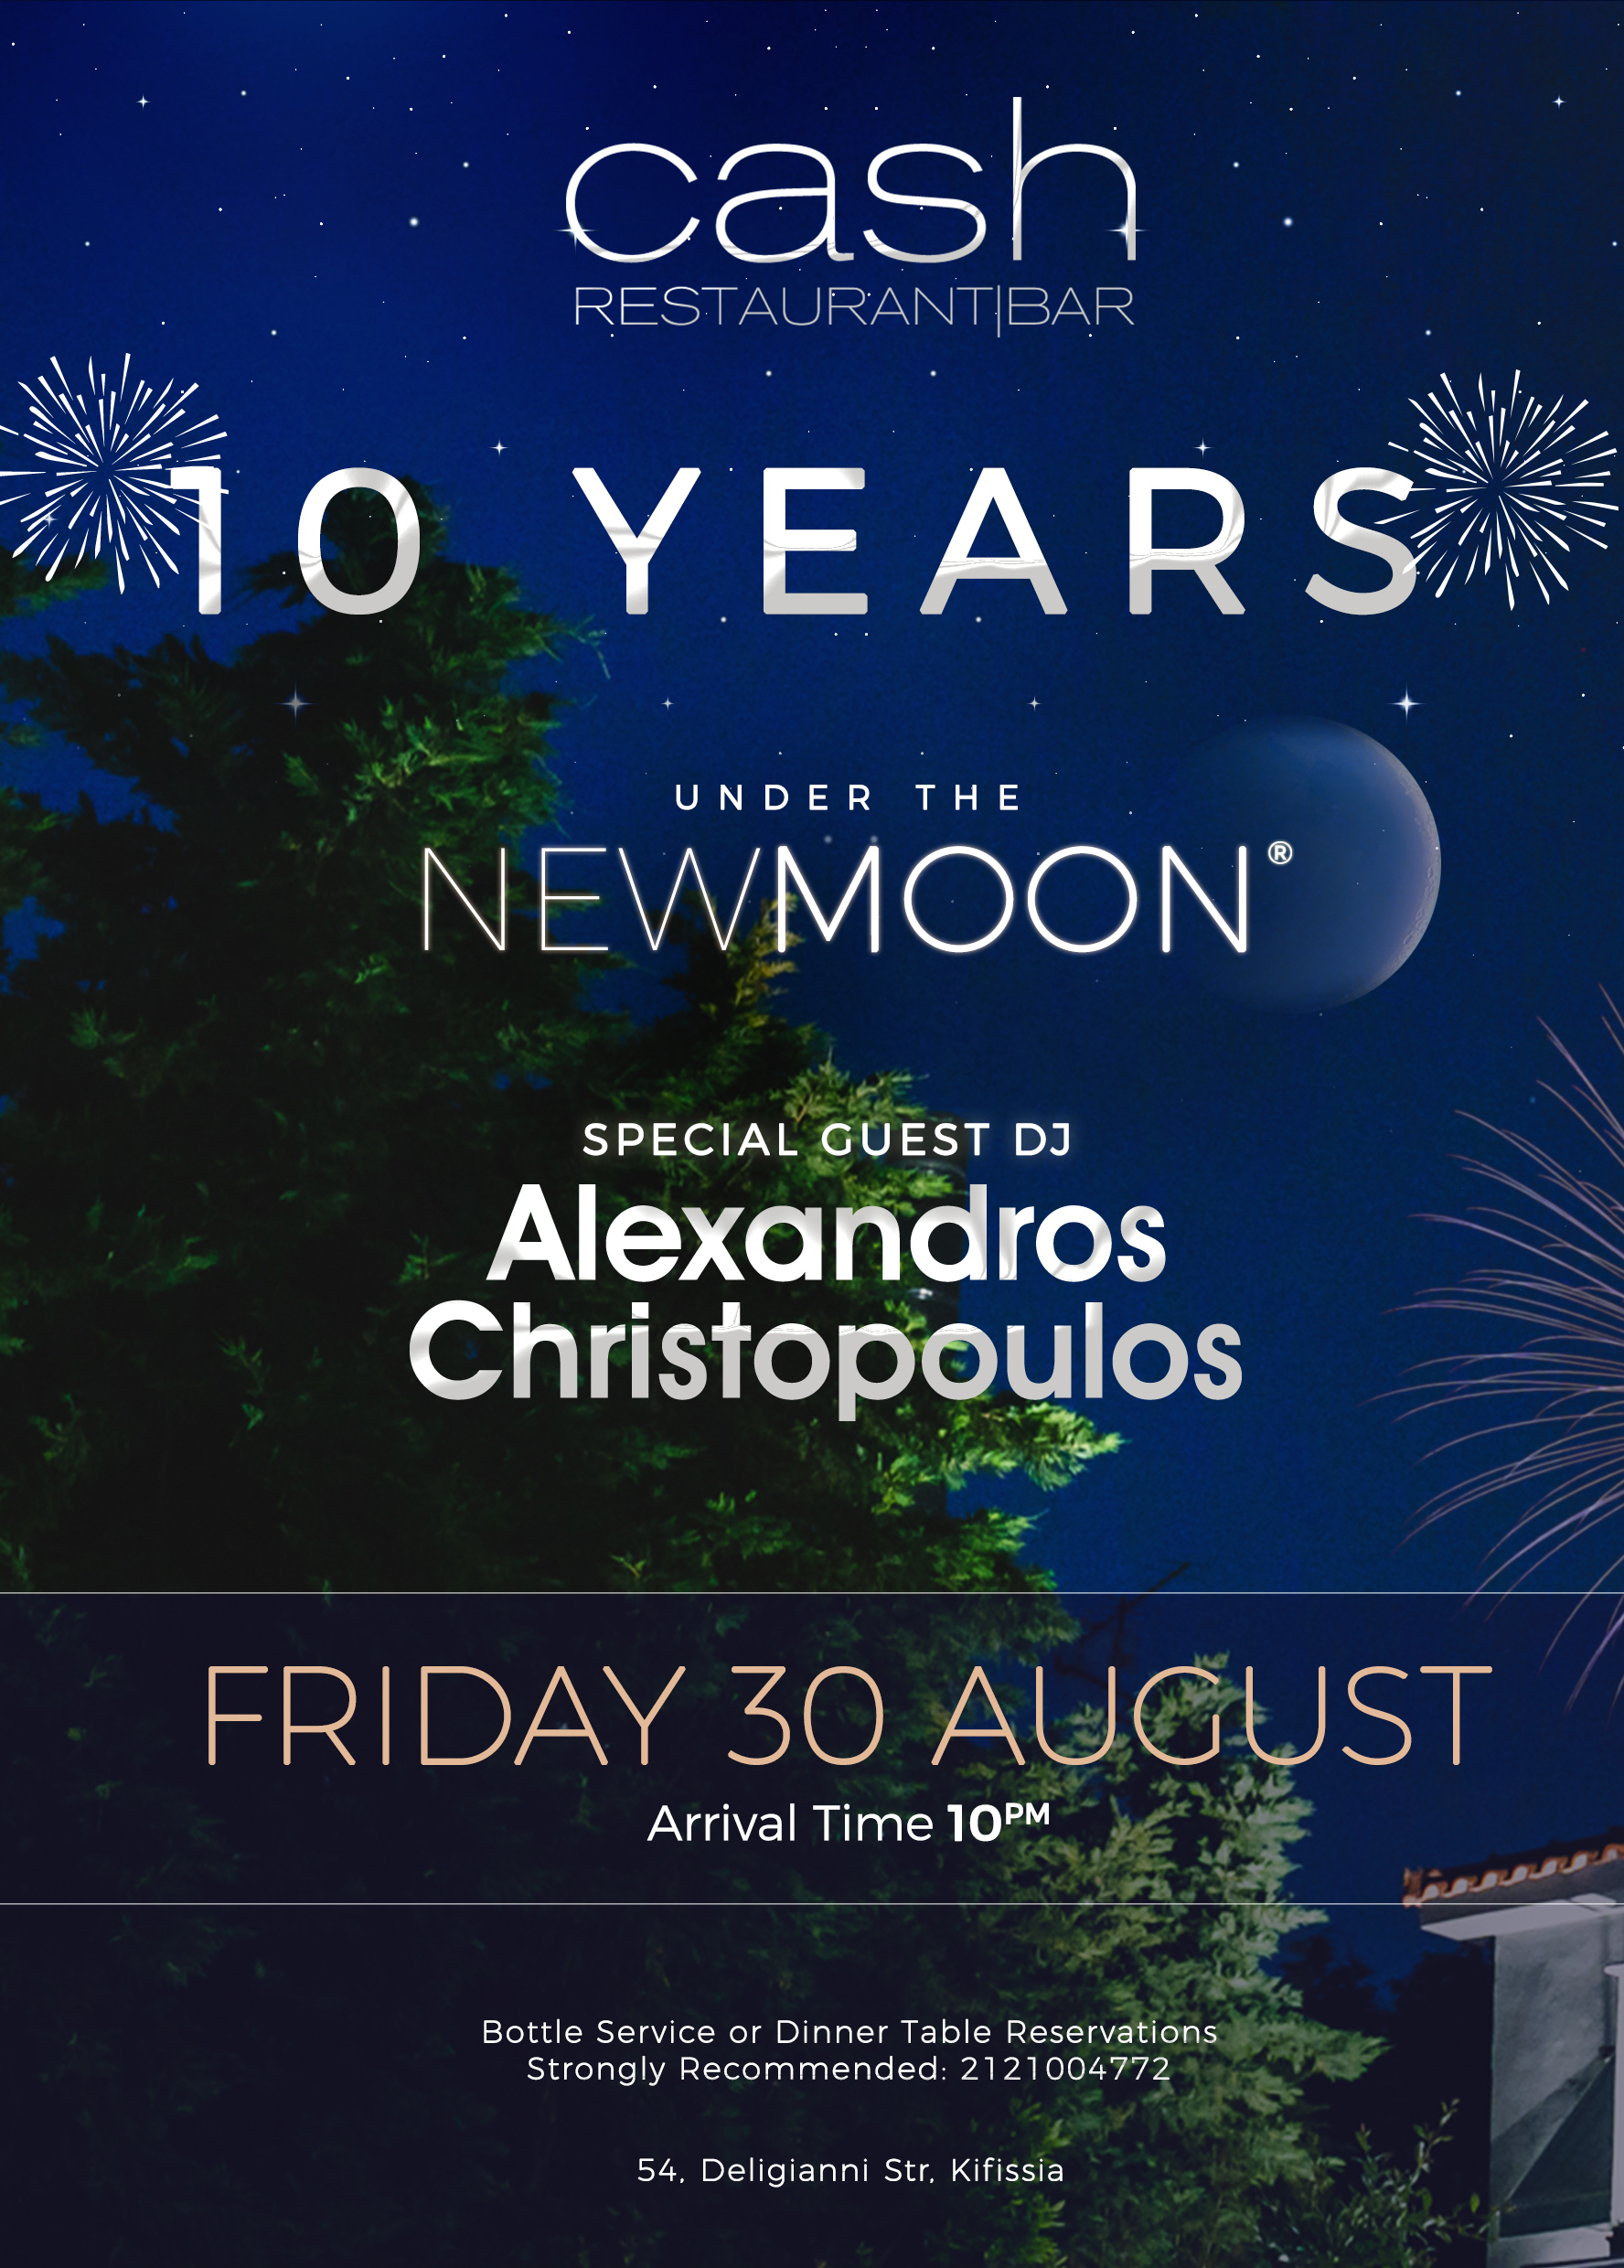 10 Years CASH under the New MOON (Kifissia)